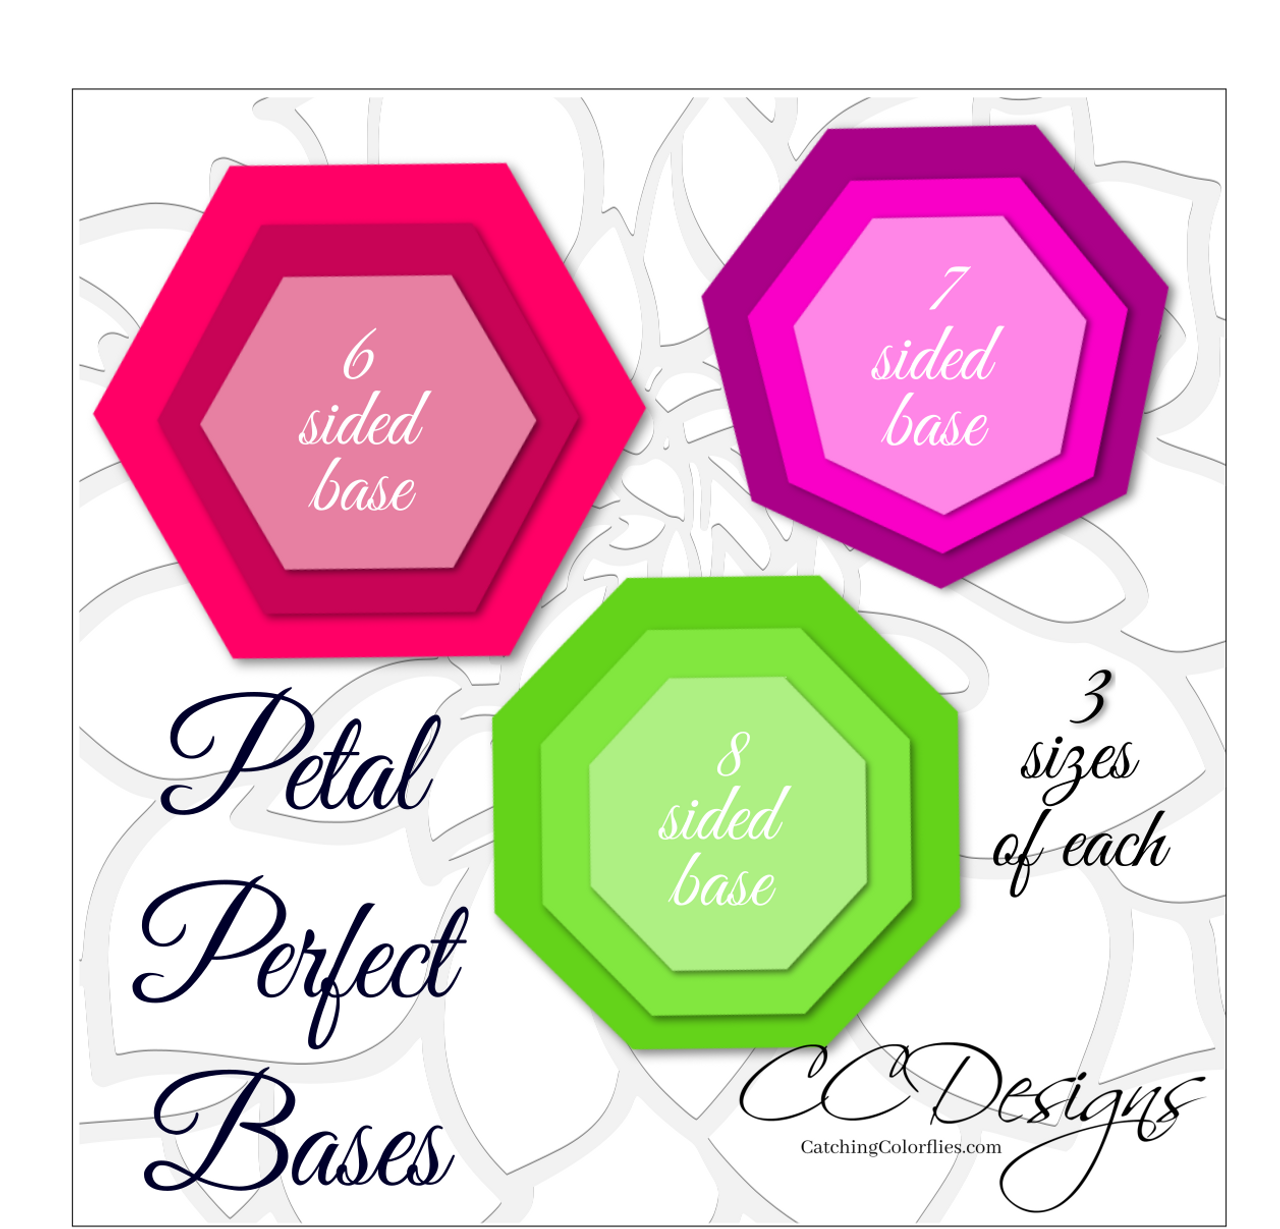 Petal perfect bases for large giant paper flower templates petal perfect bases for large giant paper flower templates catching colorflies izmirmasajfo